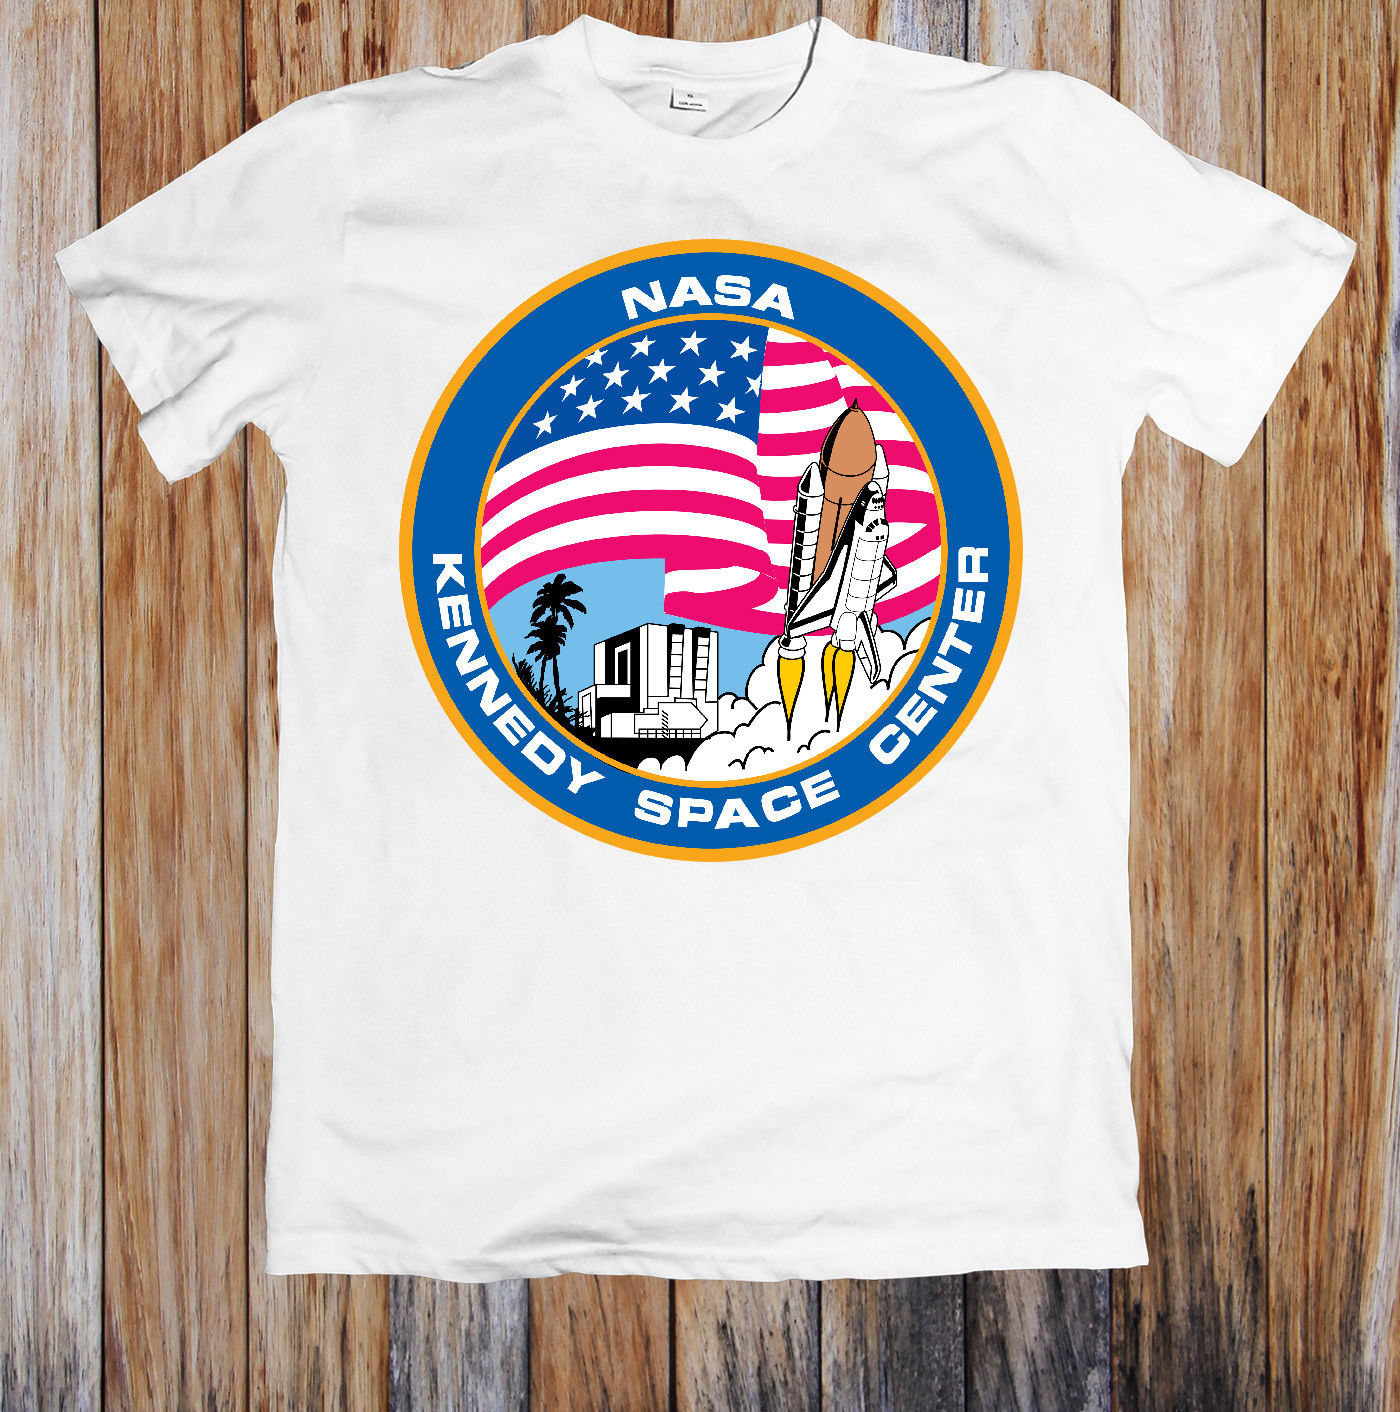 NASA KENNEDY SPACE CENTER UNISEX   T  -  SHIRT   Hot Sell 2018 Fashion   T     Shirt   Short Sleeve Tricolor 2018 New Arrival Men'S Fashion